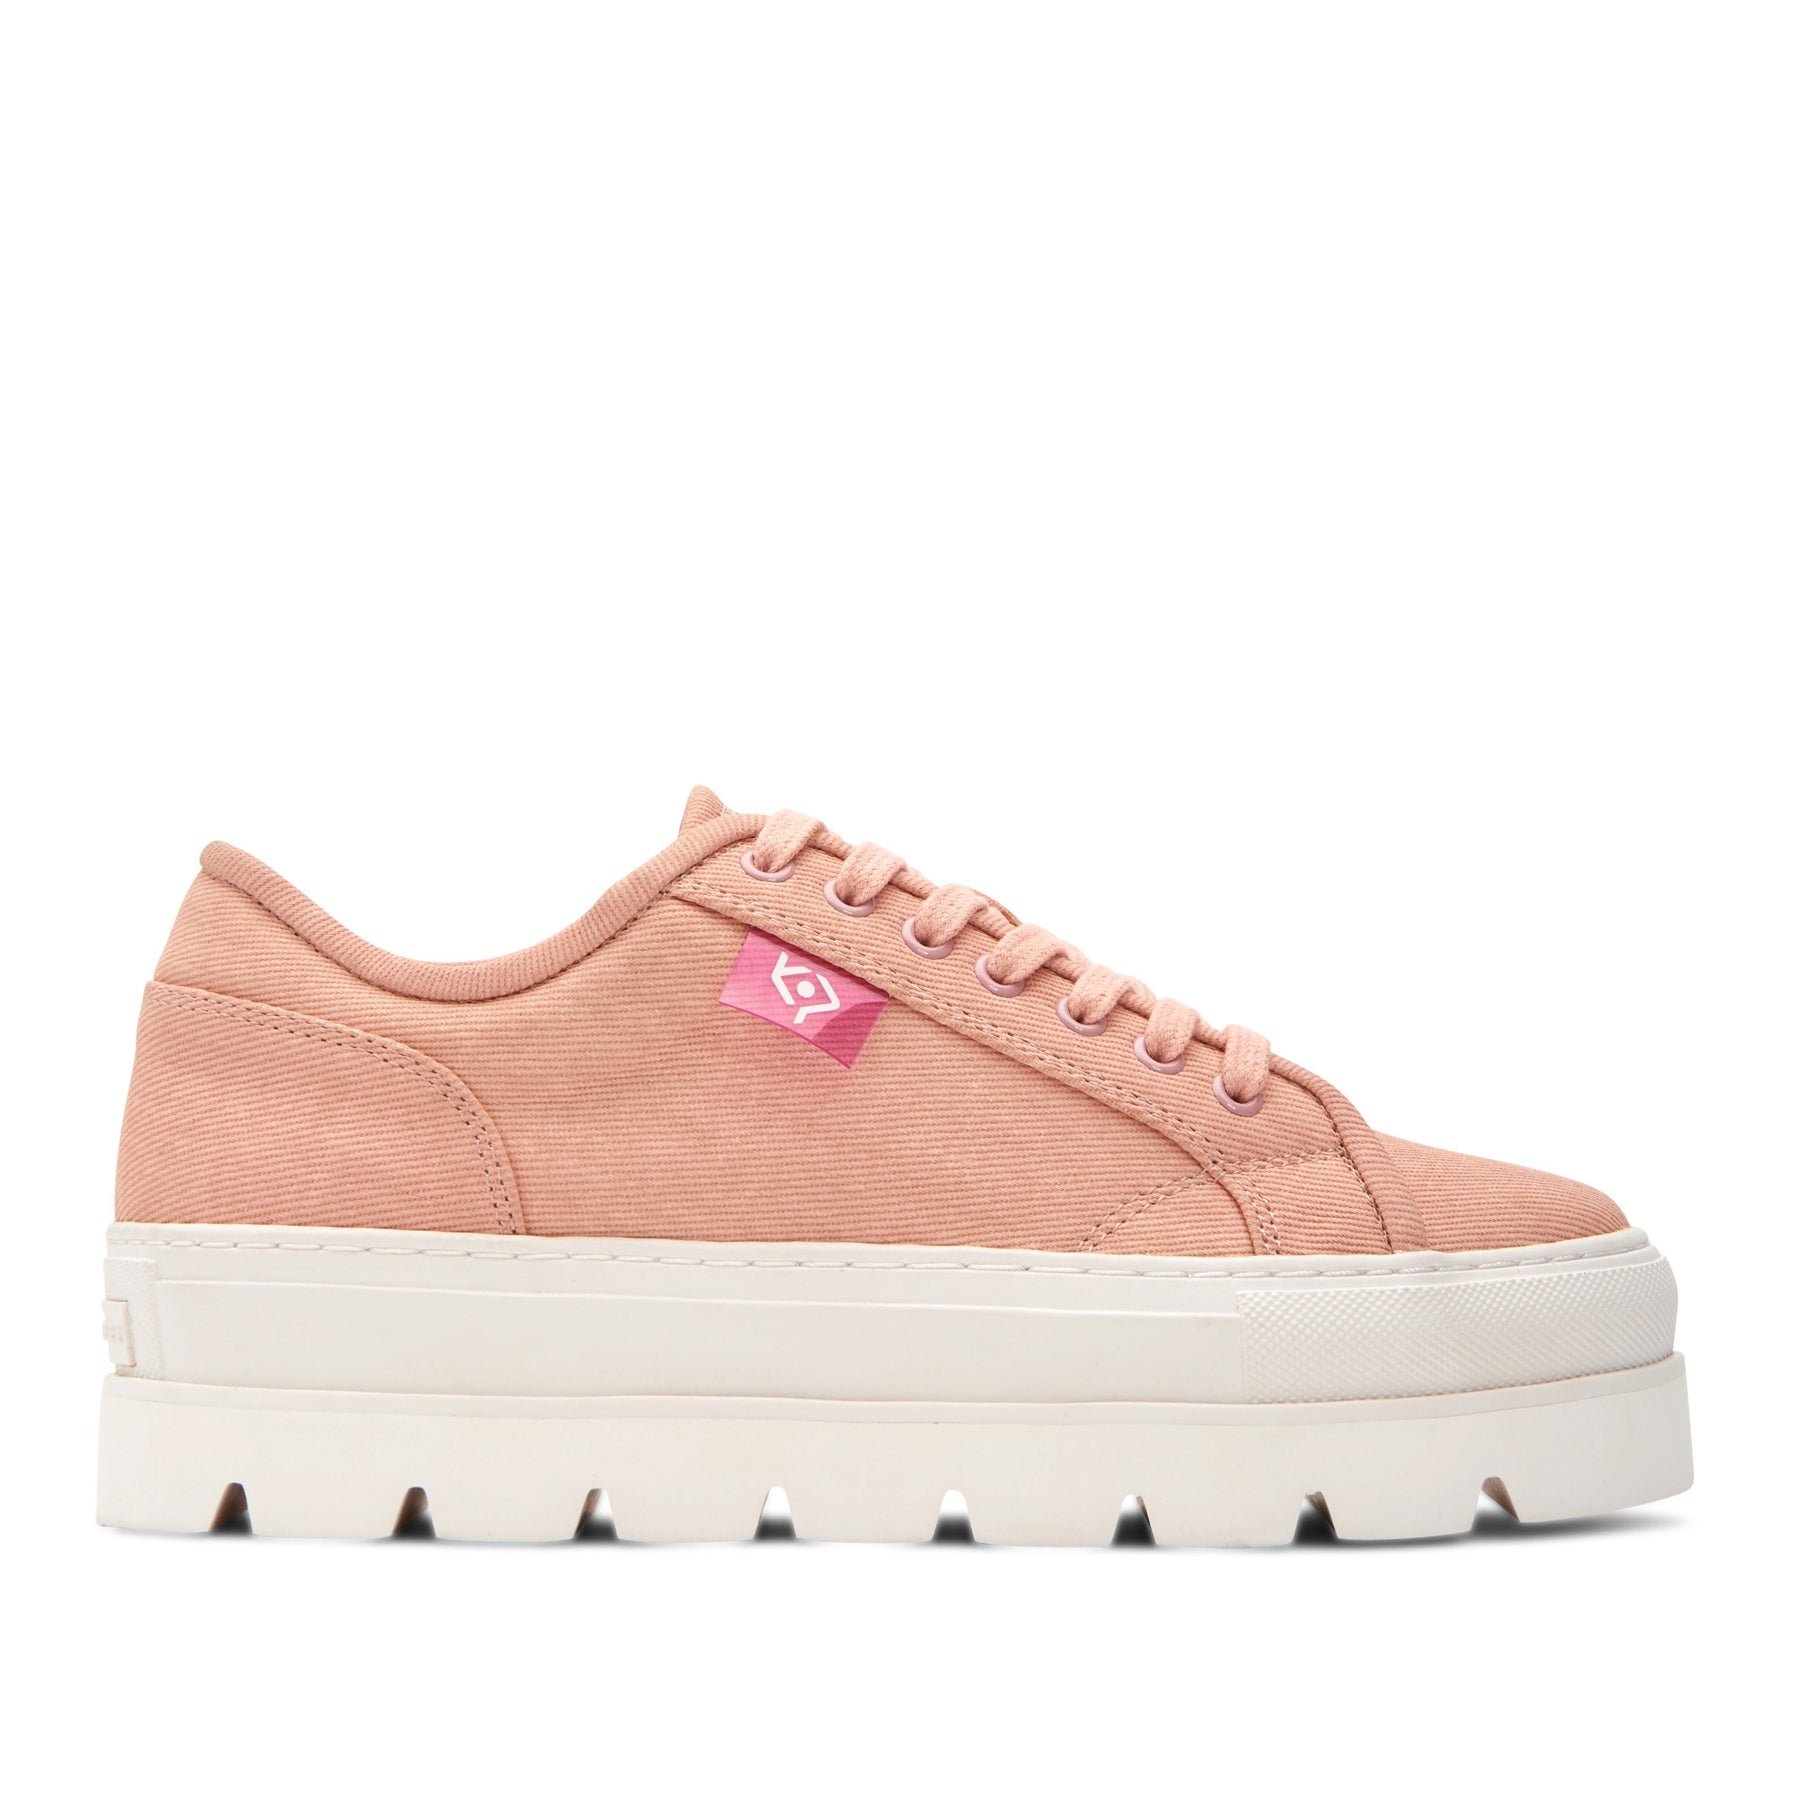 katy perry platform sneaker canvas in rose quartz size 5.5 | the cape